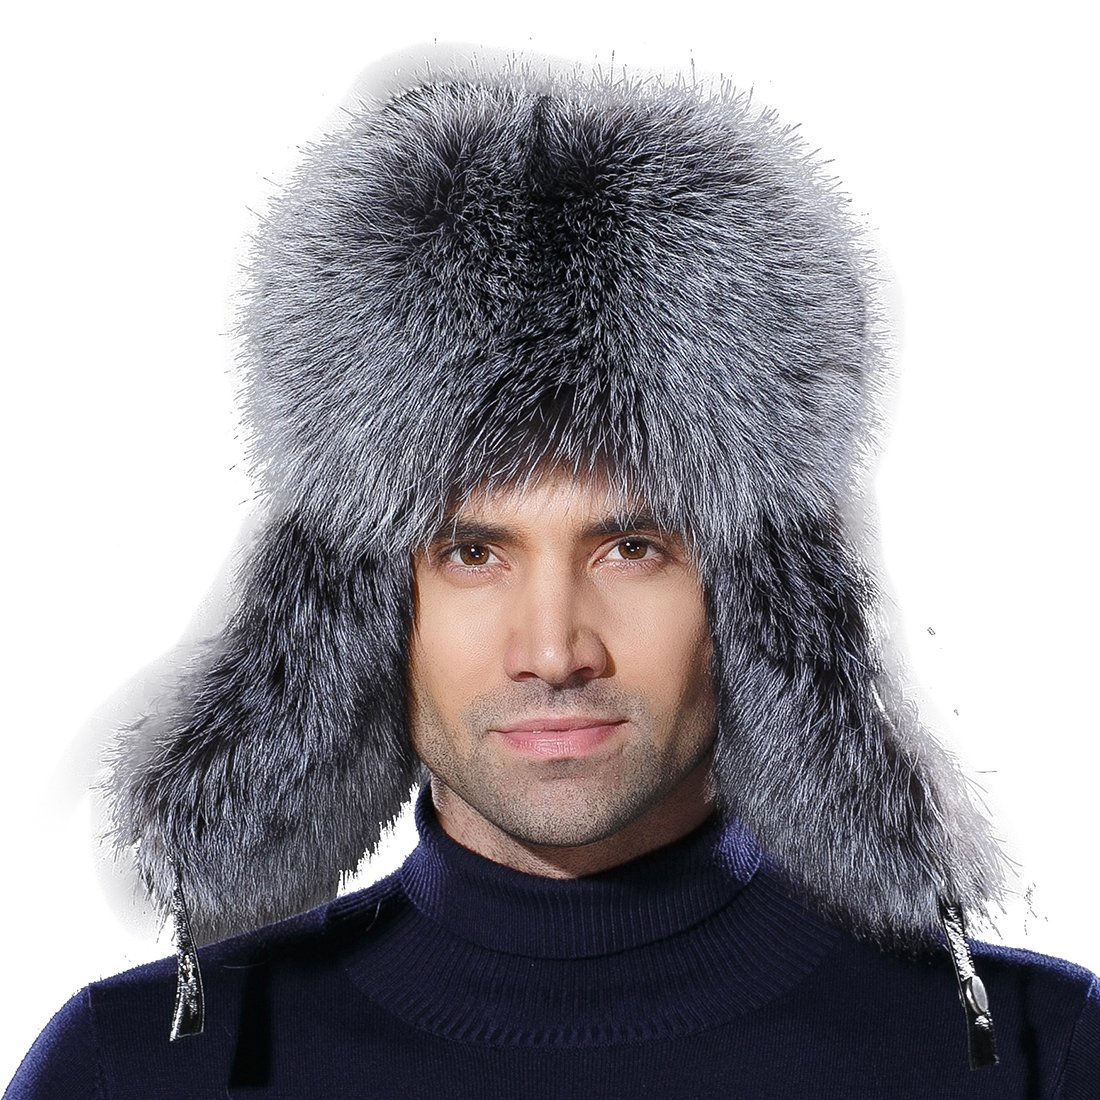 URSFUR Winter Russian Fur Hat Mens Real Silver Fox Fur Ushanka Trapper Cap by URSFUR (Image #2)